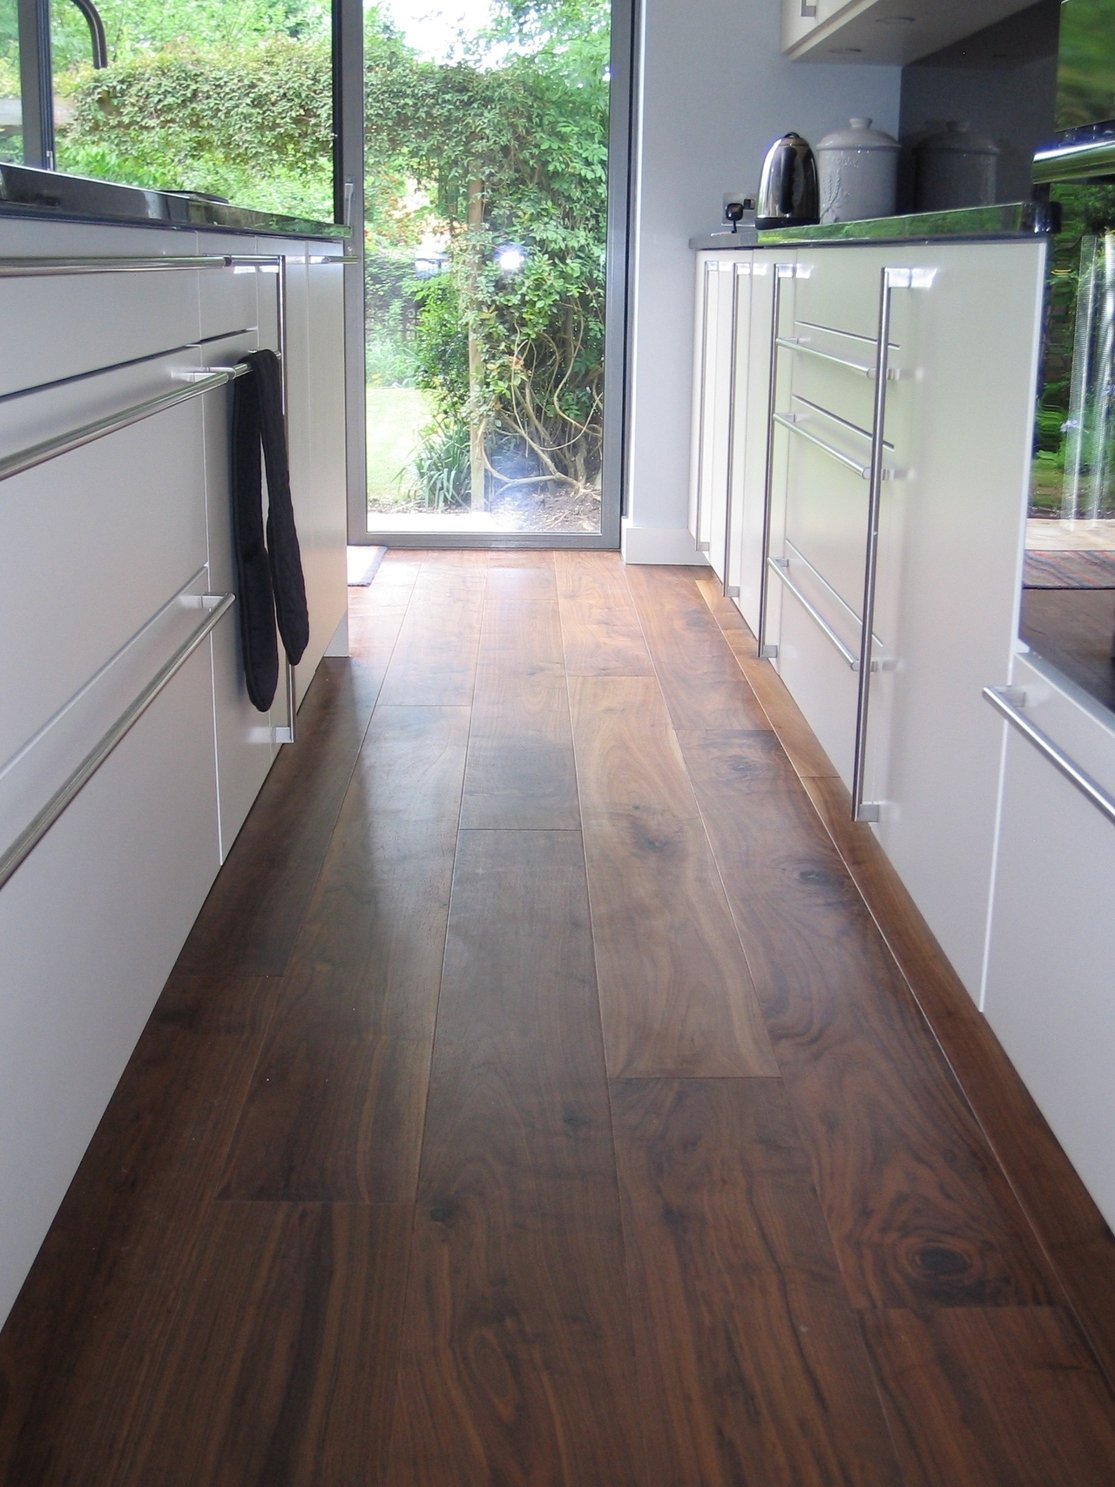 Oiled Walnut in a Kitchen – The Solid Wood Flooring Company